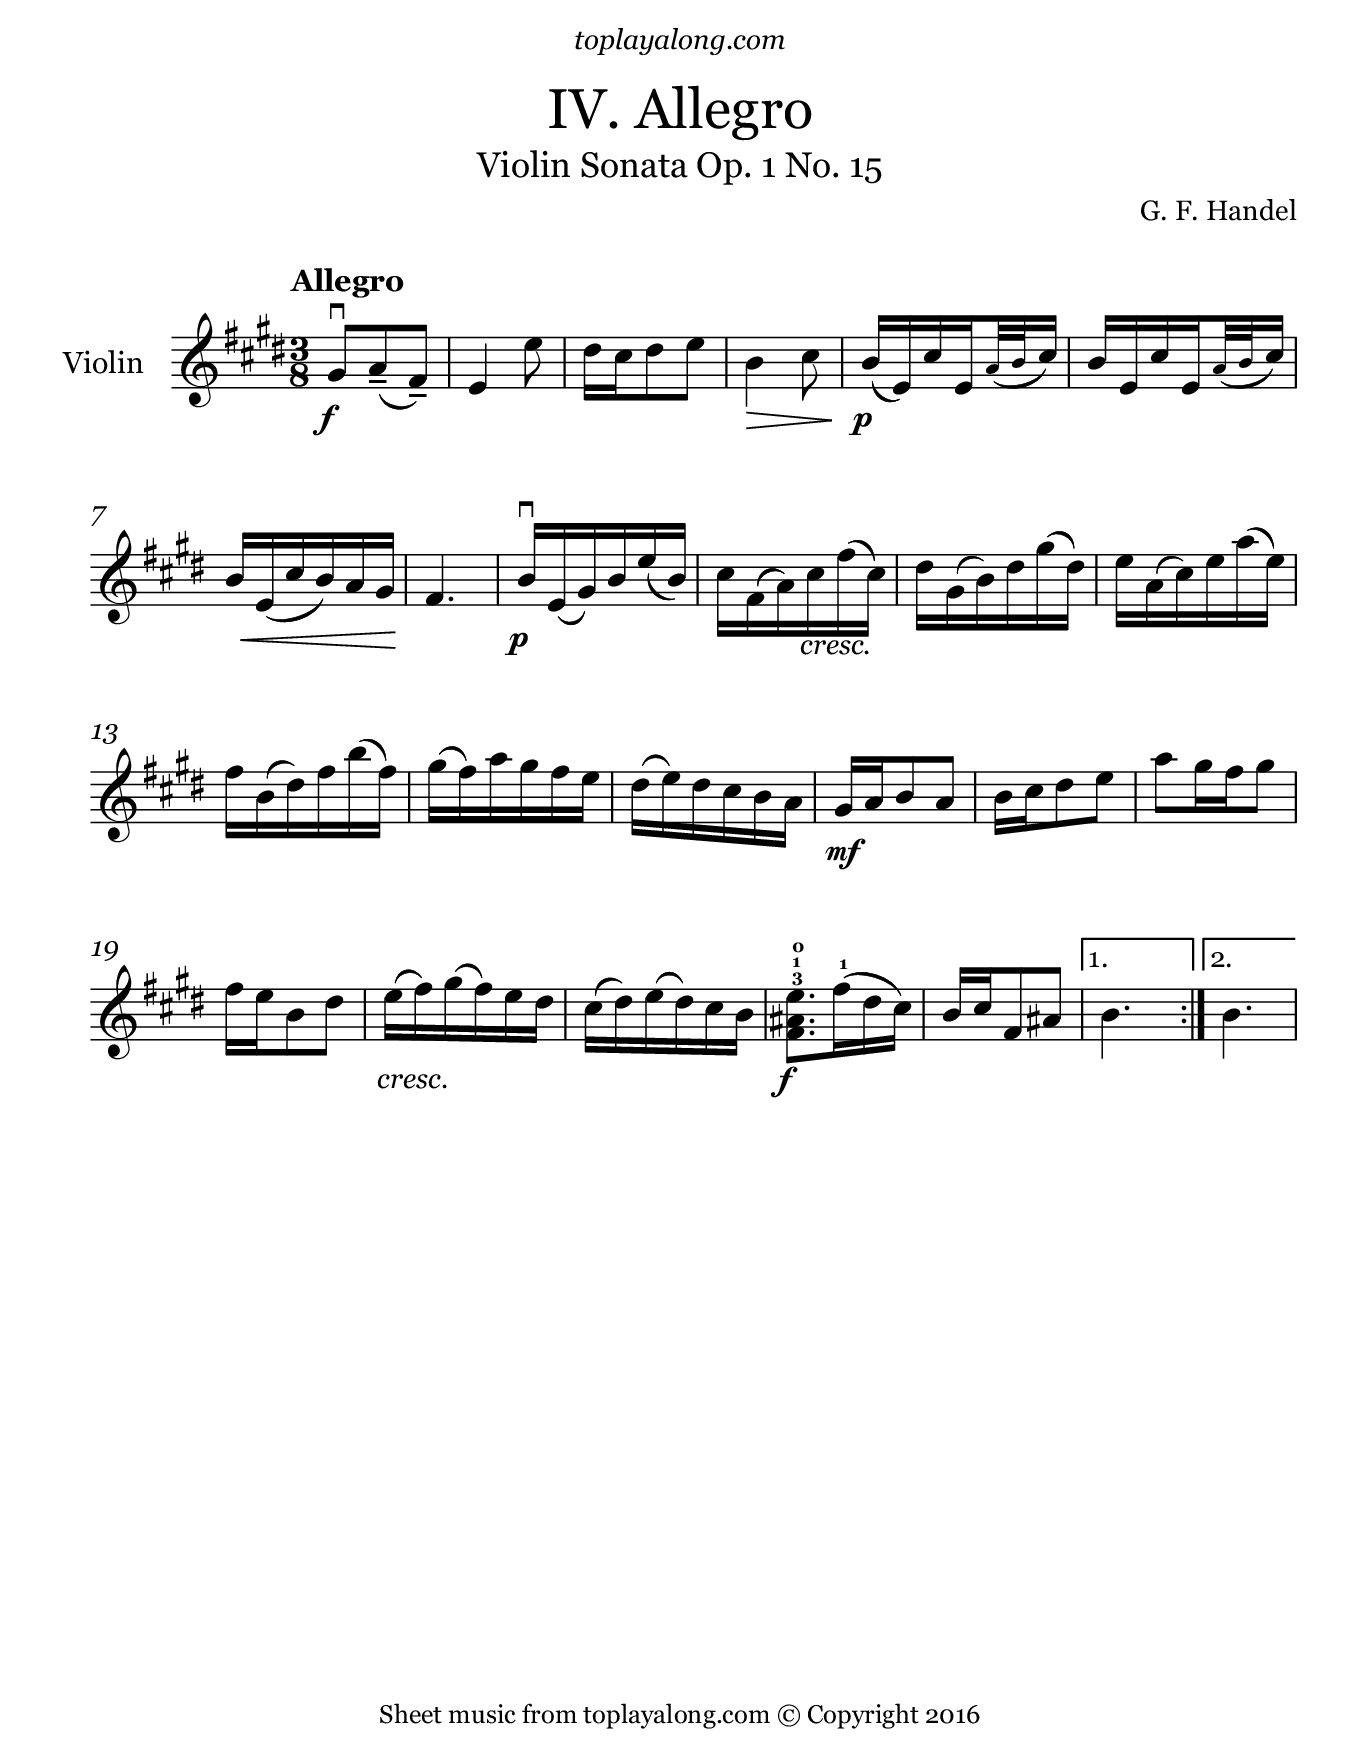 Violin Sonata Op. 1 No. 15 (IV. Allegro) by Handel. Sheet music for Violin, page 1.